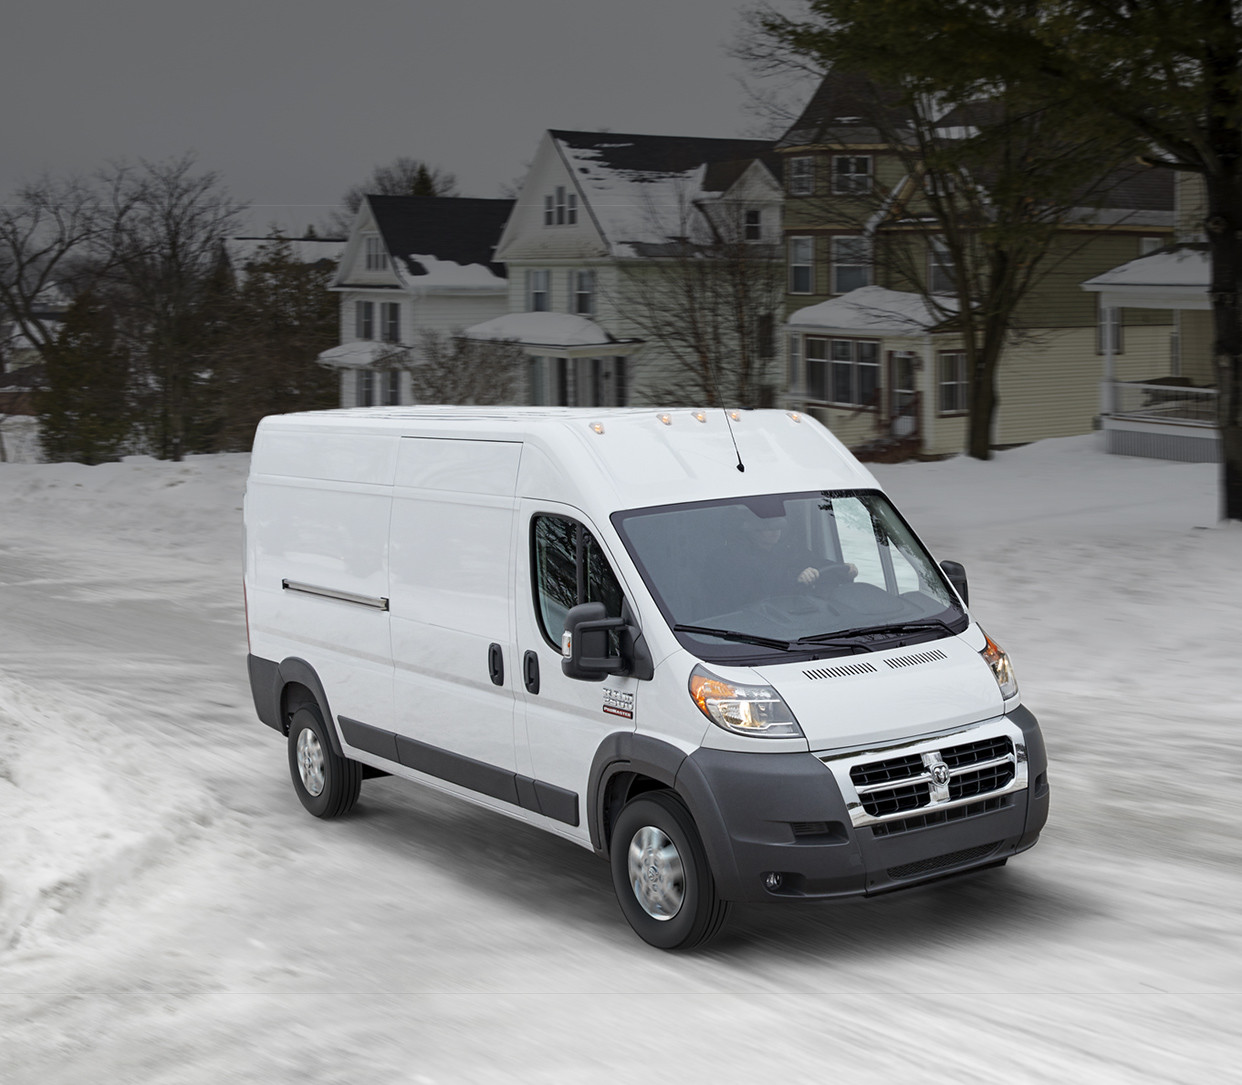 2018 ram promaster owners manual